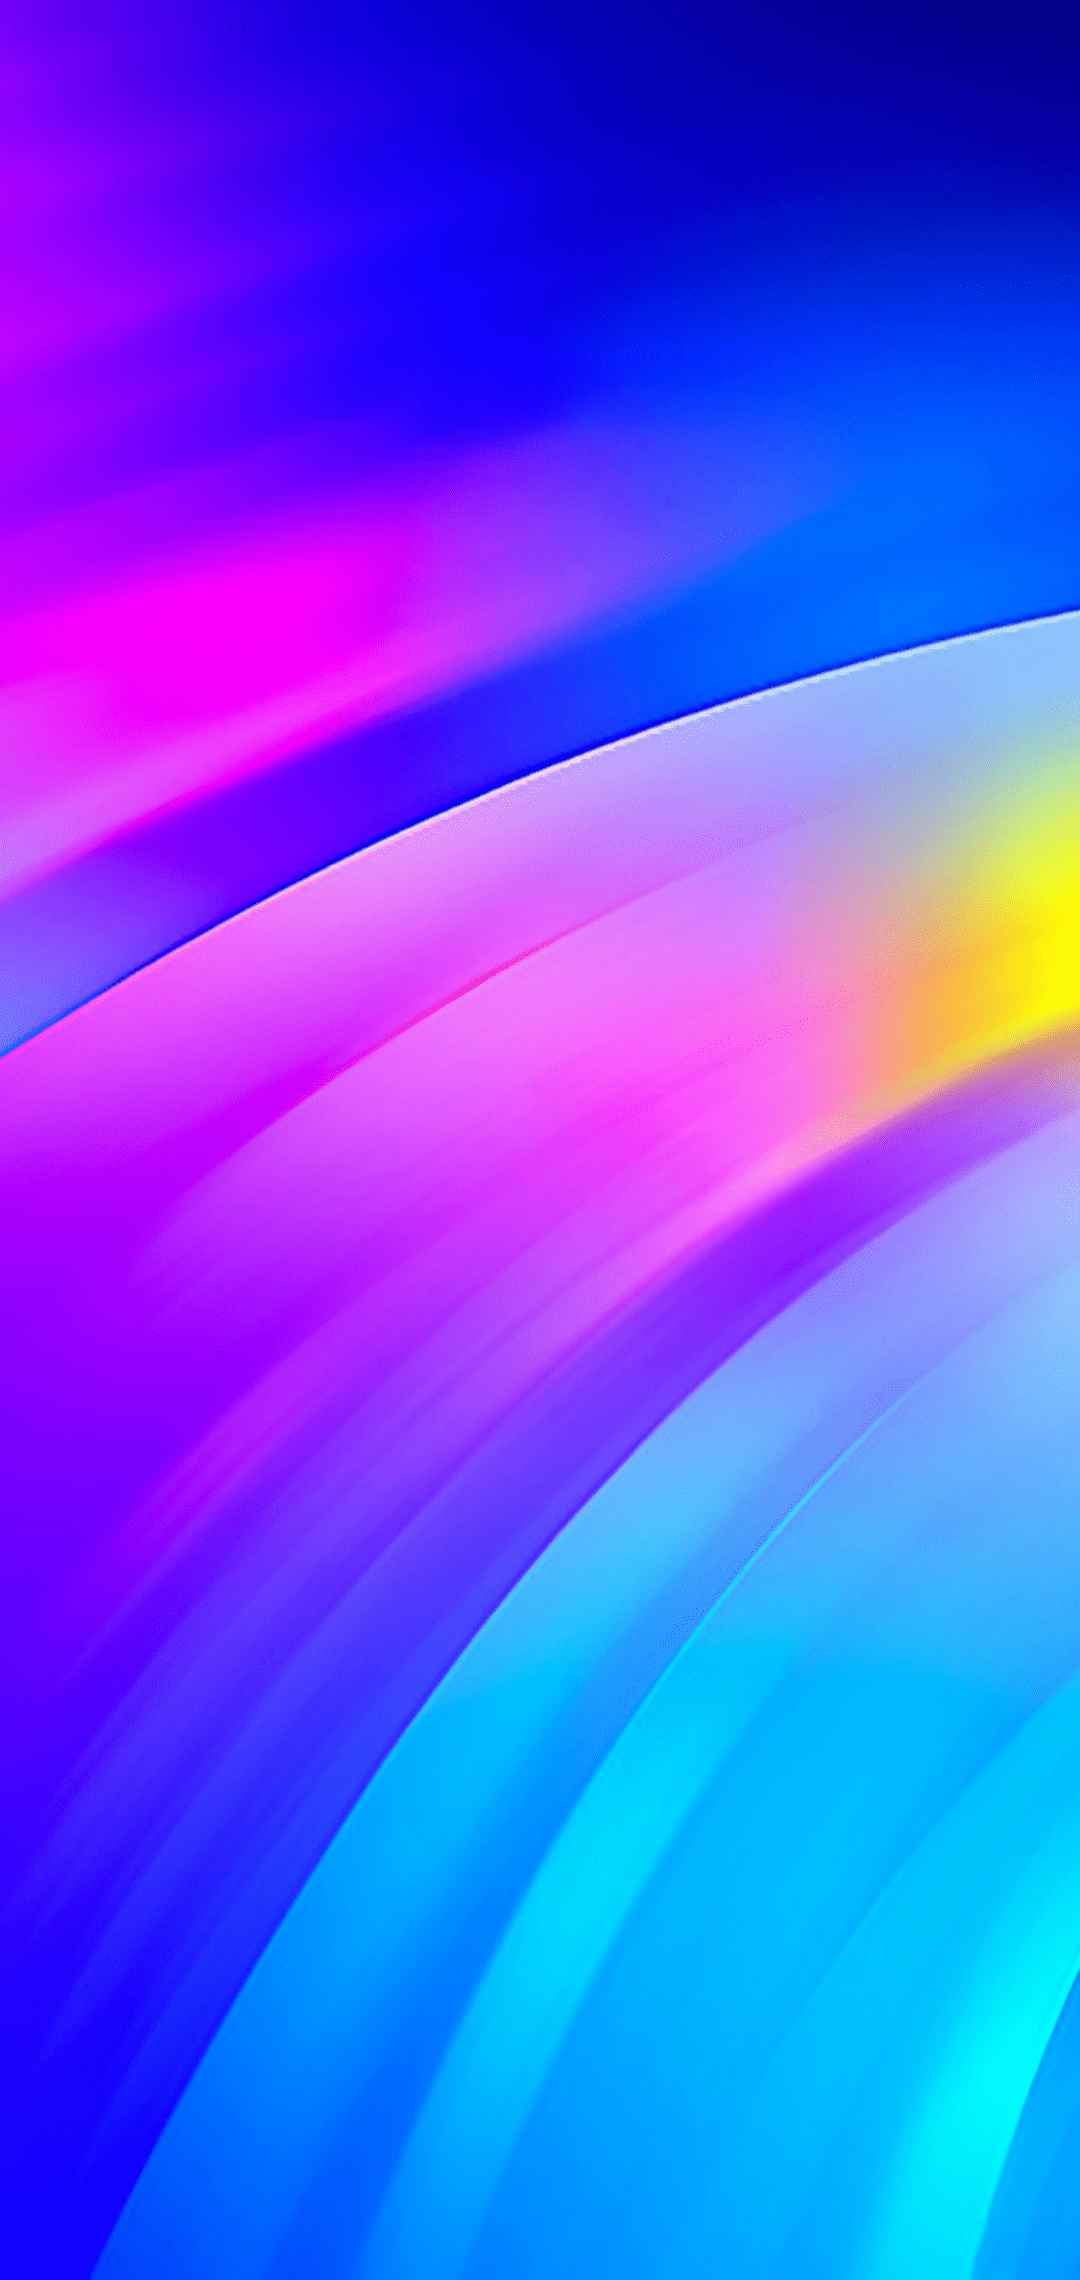 Redmi 7a Stock Wallpapers Full Hd Download Droidviews